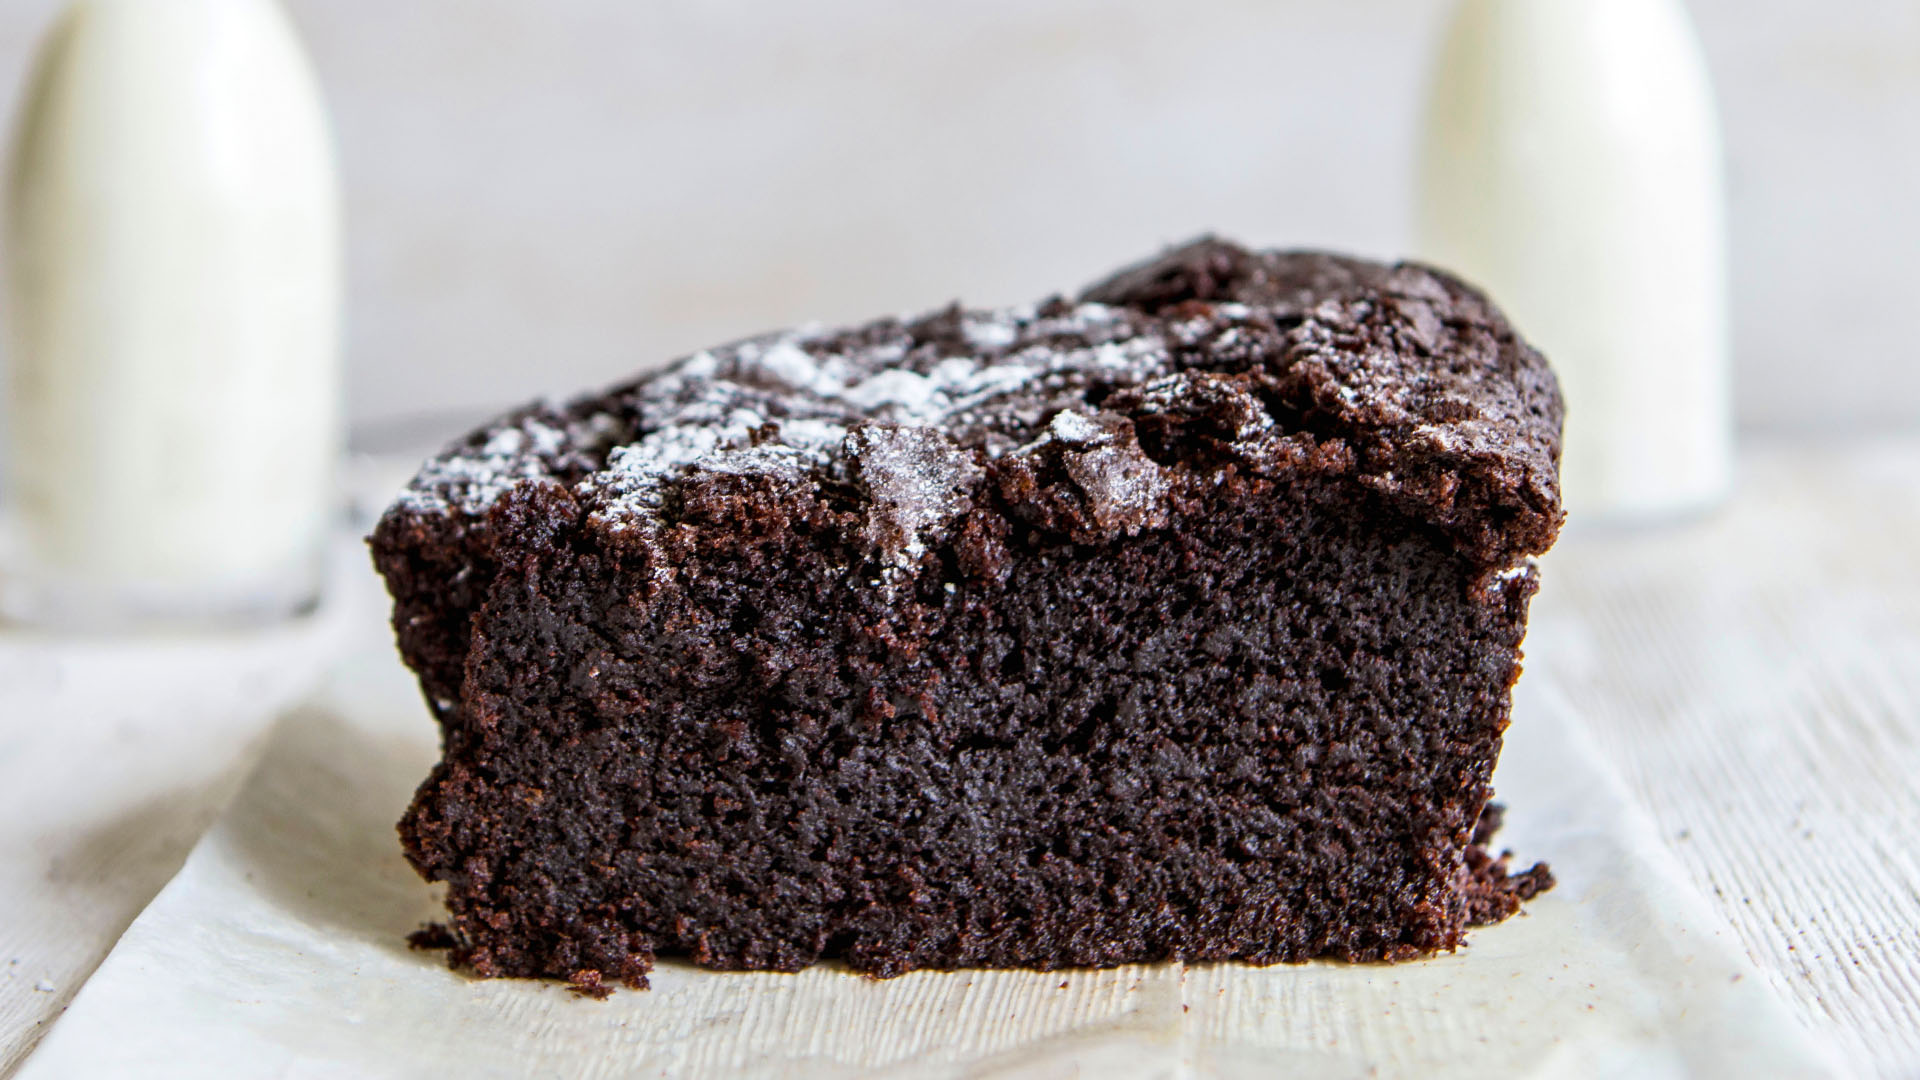 Best Cocoa Powder For Chocolate Cake Uk